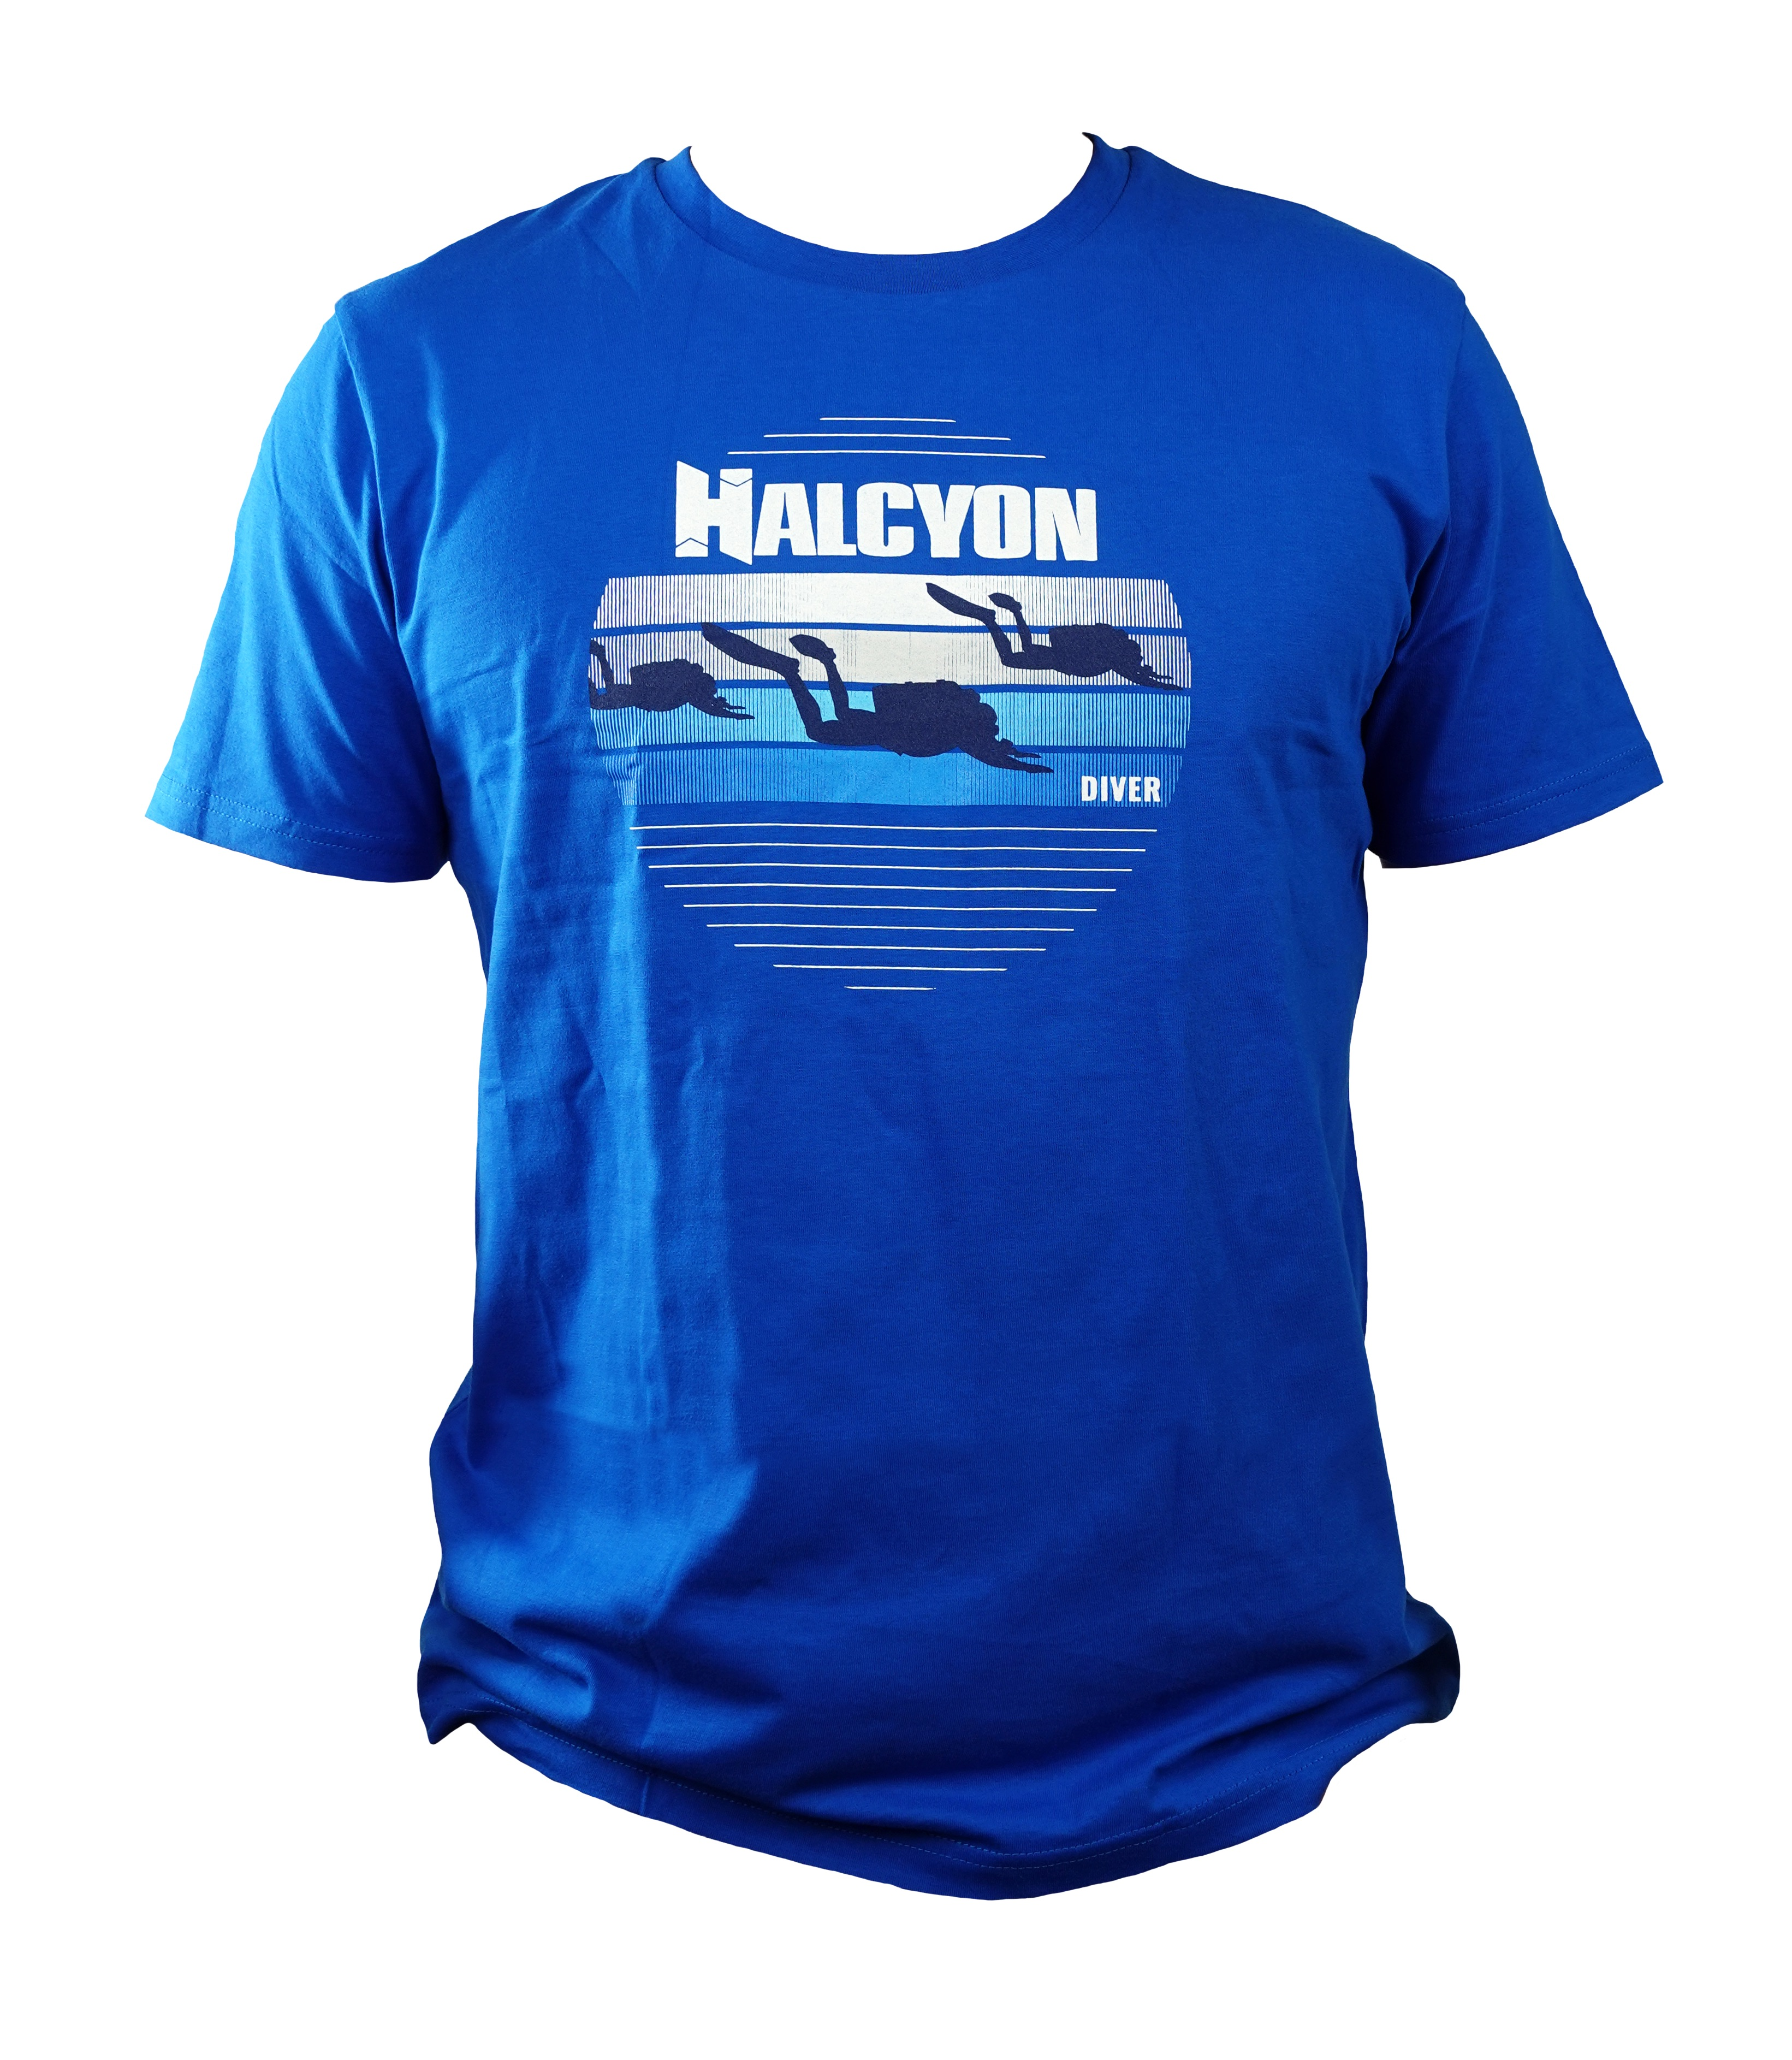 Halcyon Blue Diver T-shirt, Men's